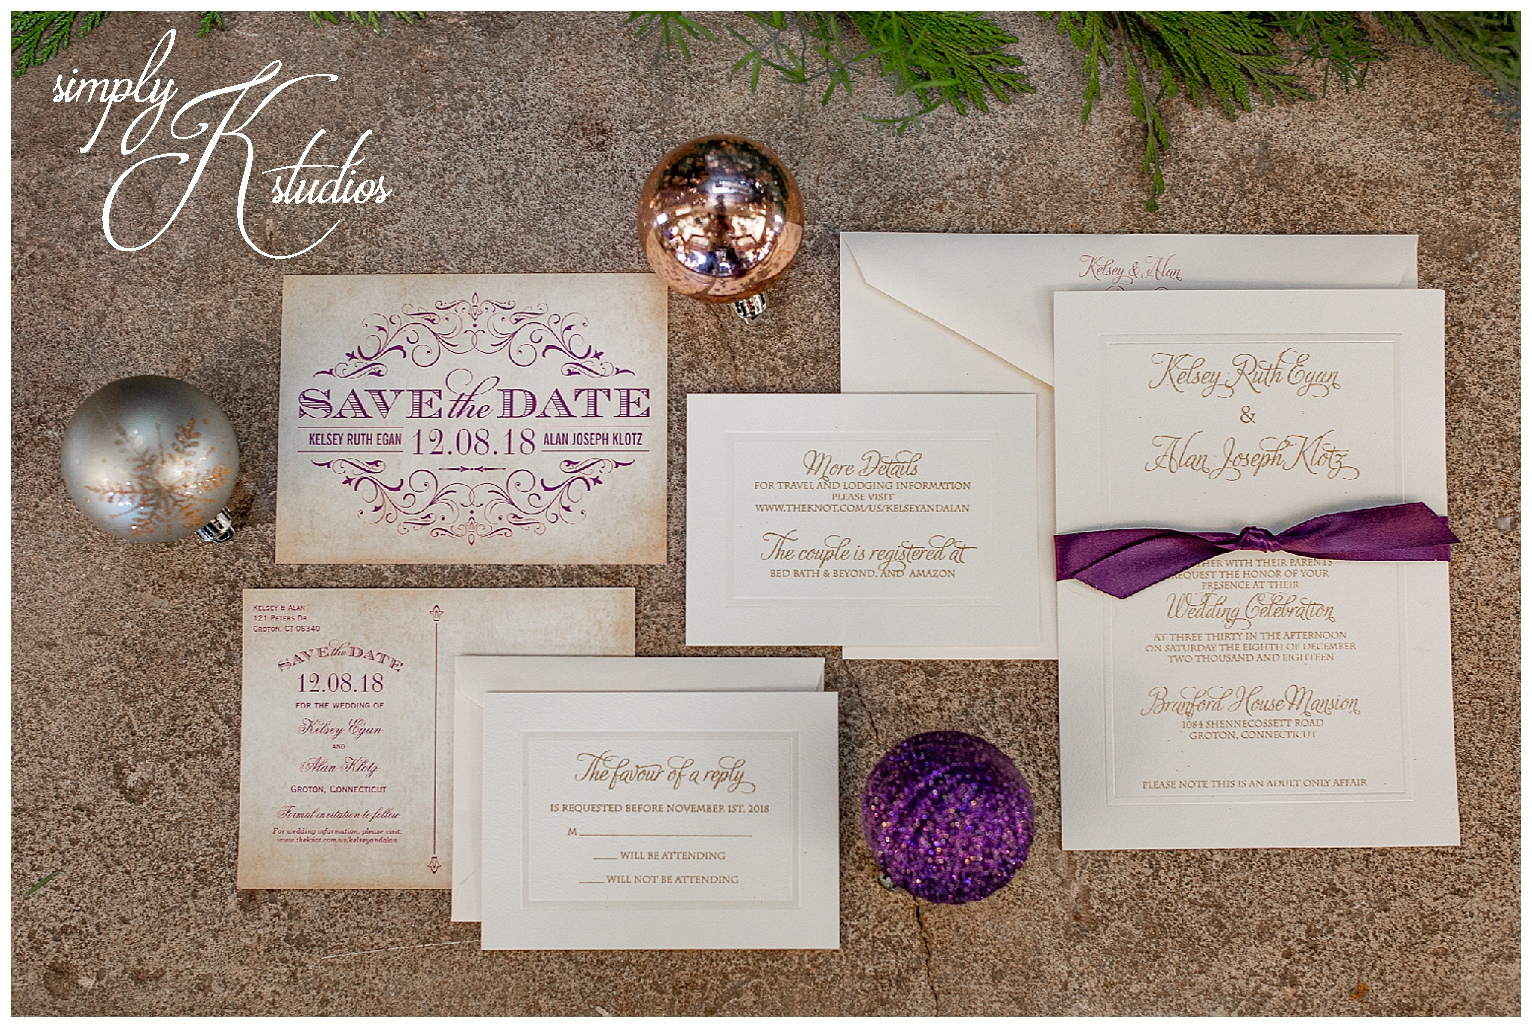 24 A Wedding Invitation.jpg